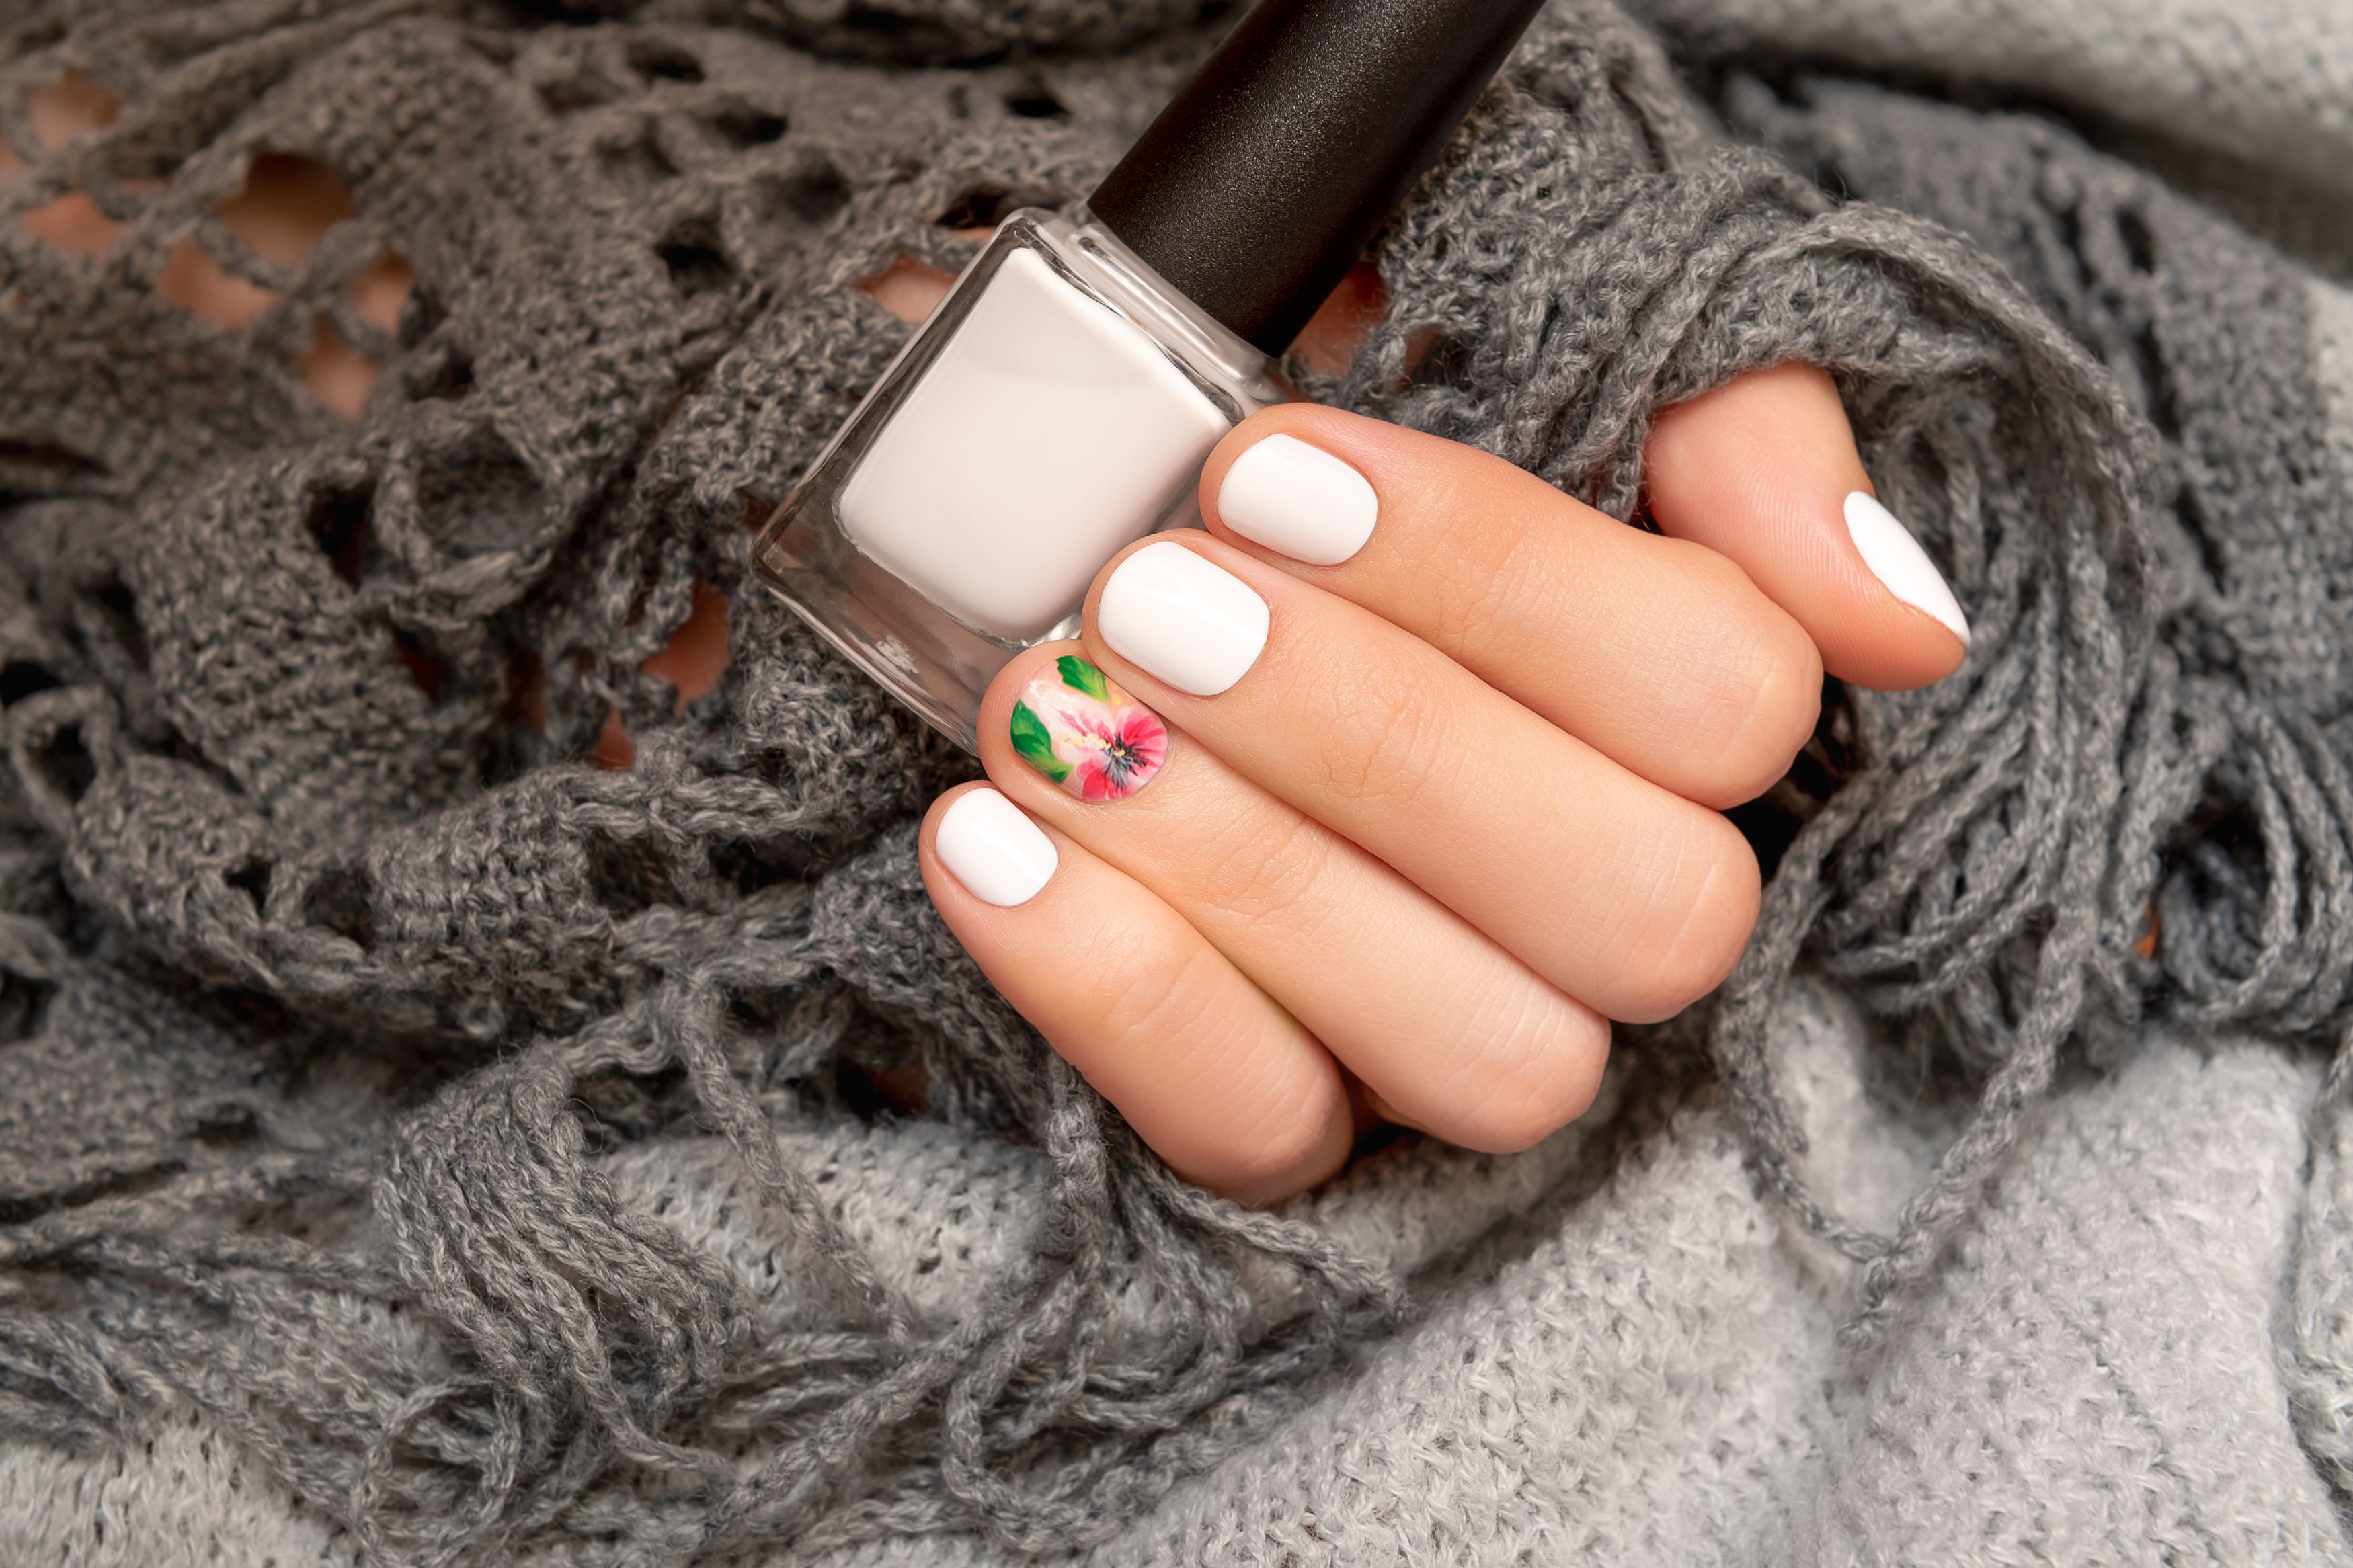 MINT FASHION ROYALTY AWESOME CAUCASIAN HANDS WITH BLACK NAIL POLISH